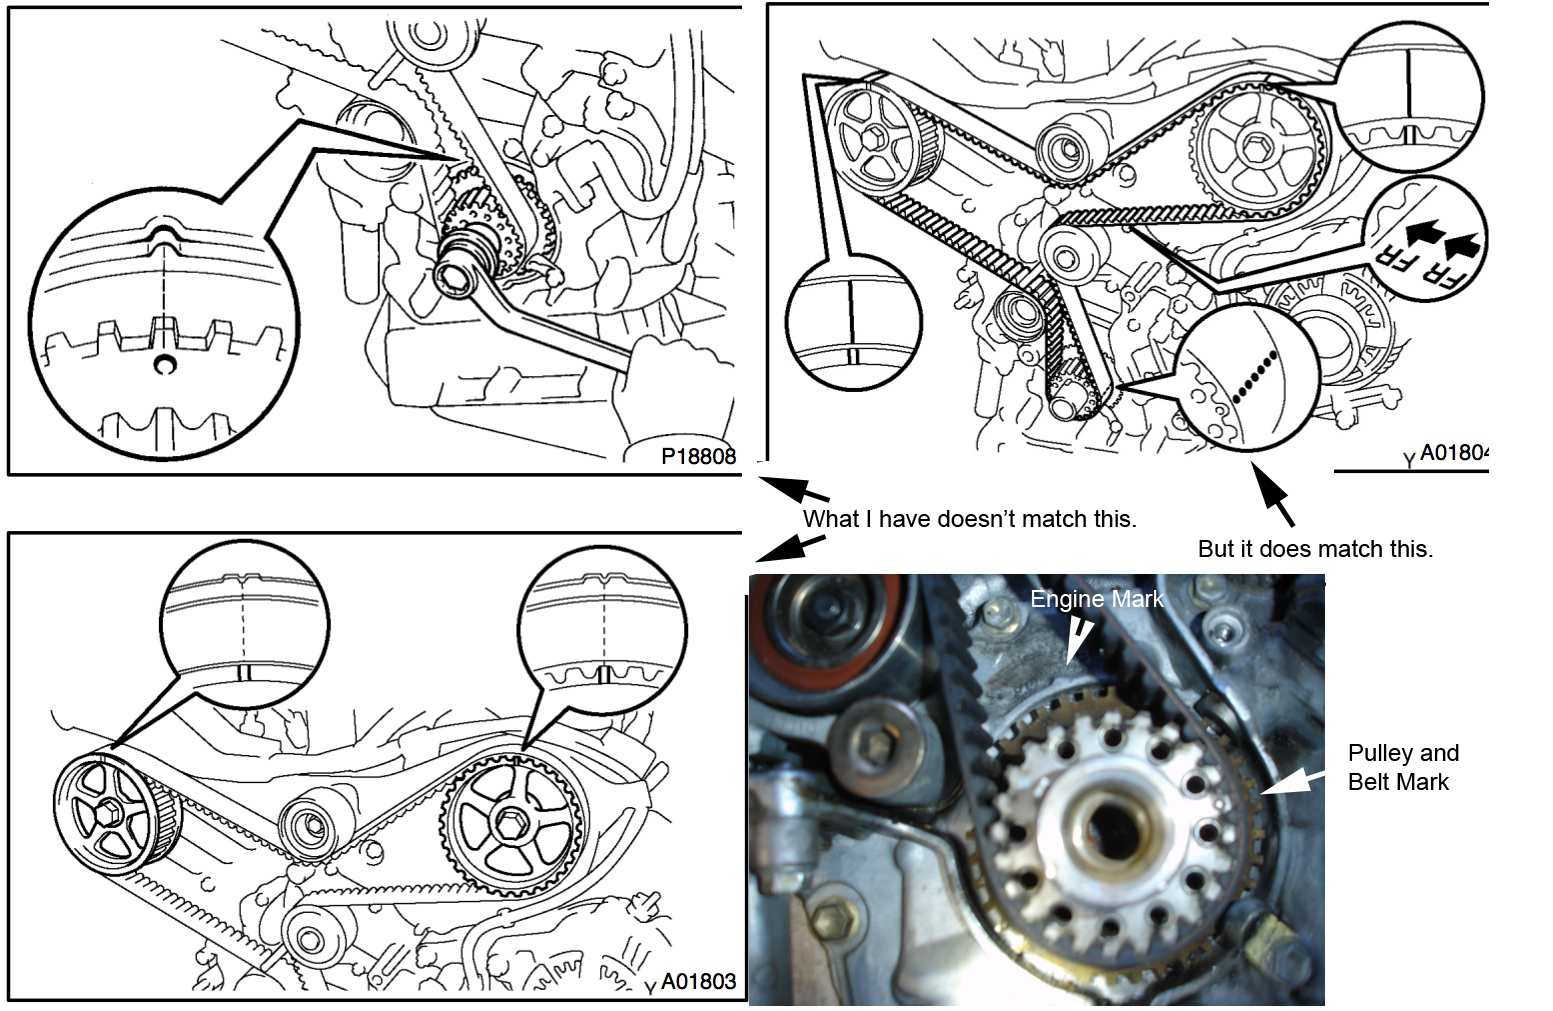 351759713120 in addition 7623 Truck Wont Run also Saturn Ion Power Steering Fluid Location together with Power Steering Reservoir Location 2012 Camry likewise Power Steering Belt Diagram. on toyota rav4 power steering pump location